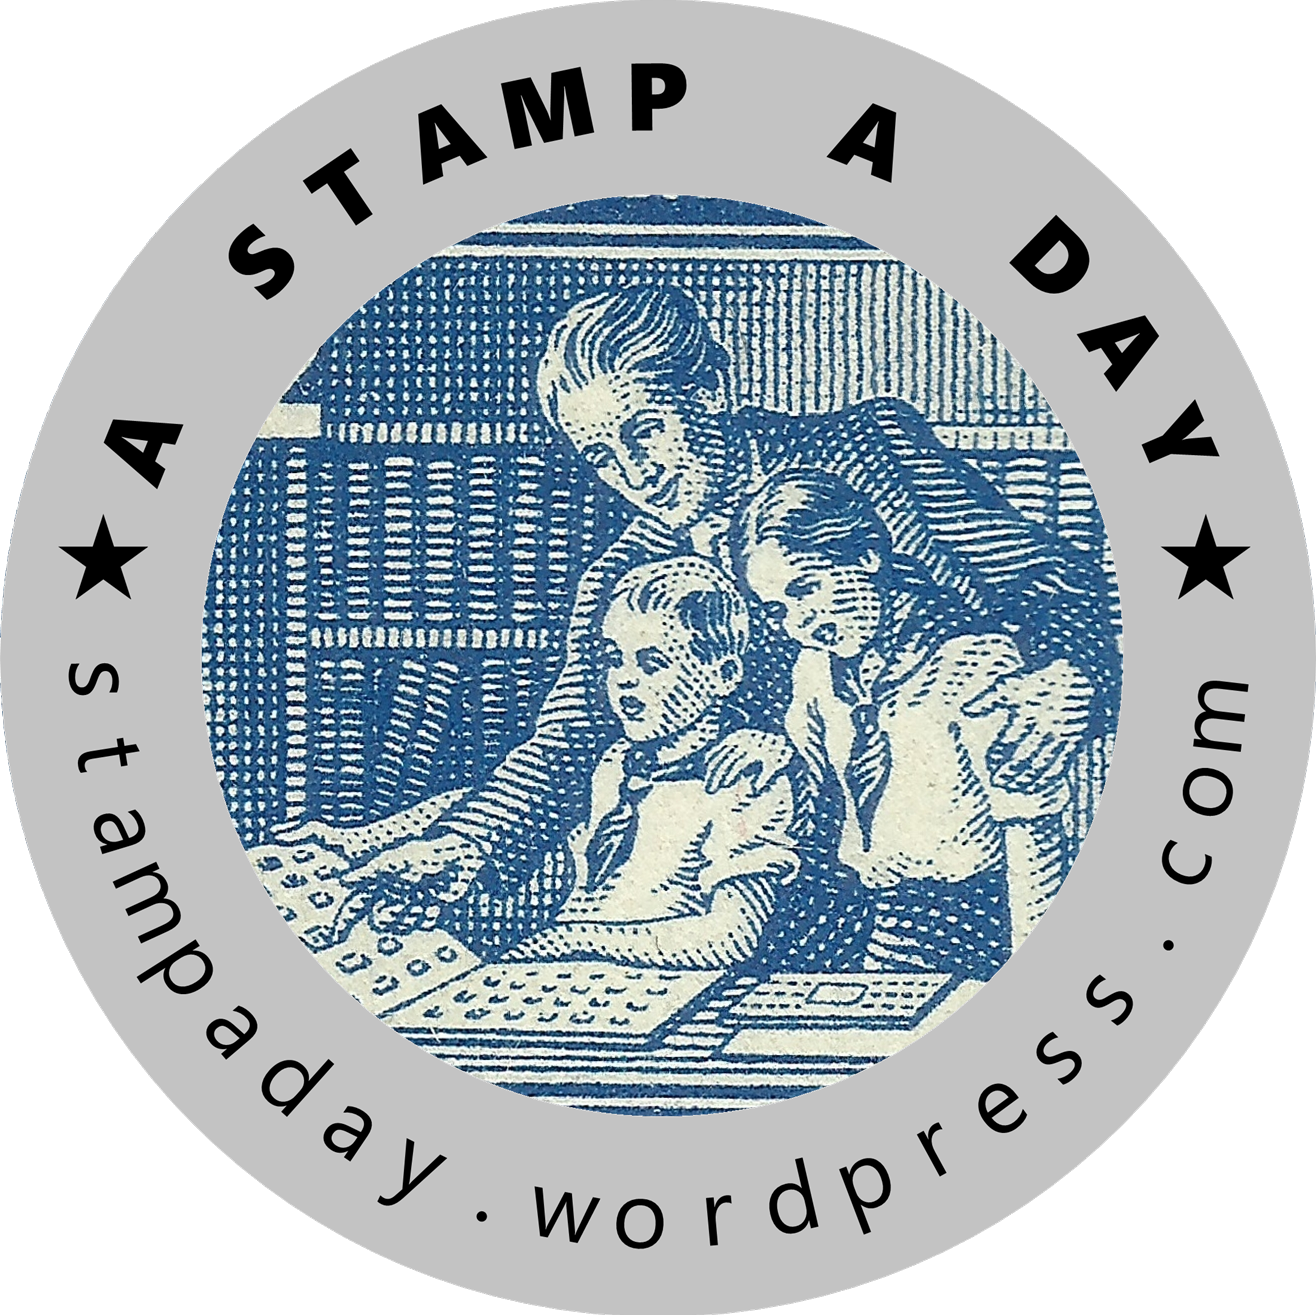 A Stamp A Day Facebook page profile photo, November 2018